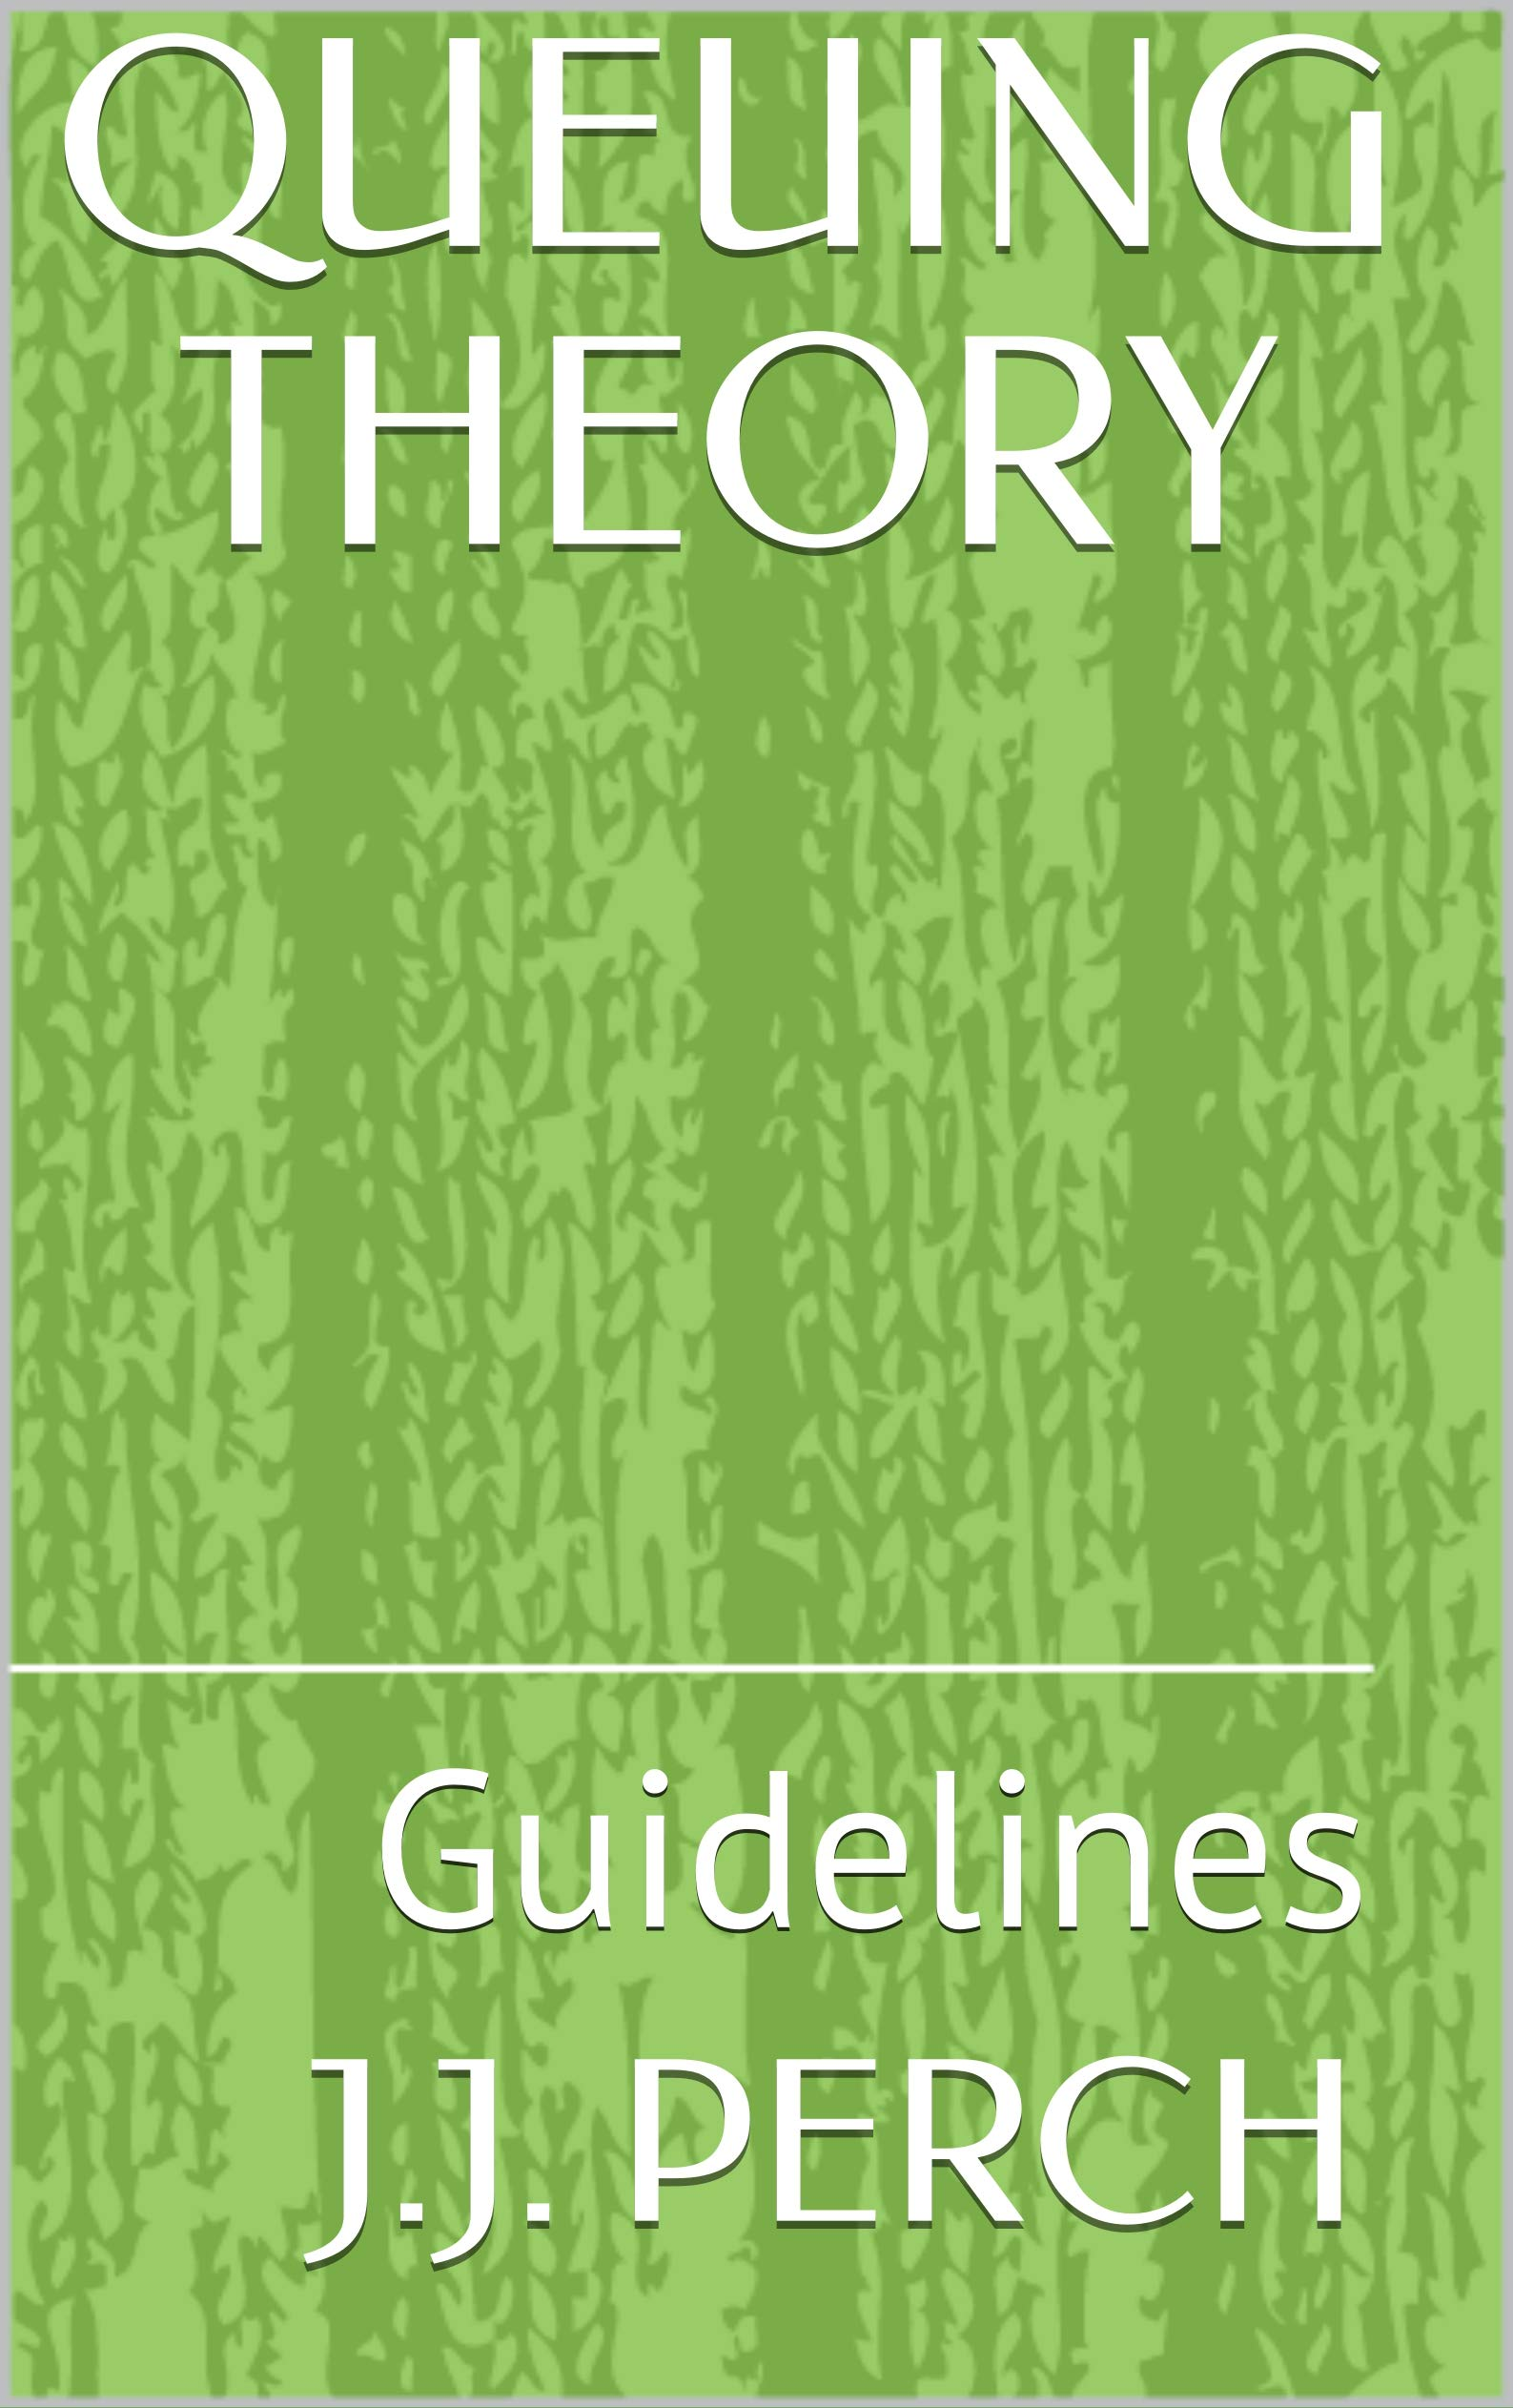 QUEUING THEORY: Guidelines